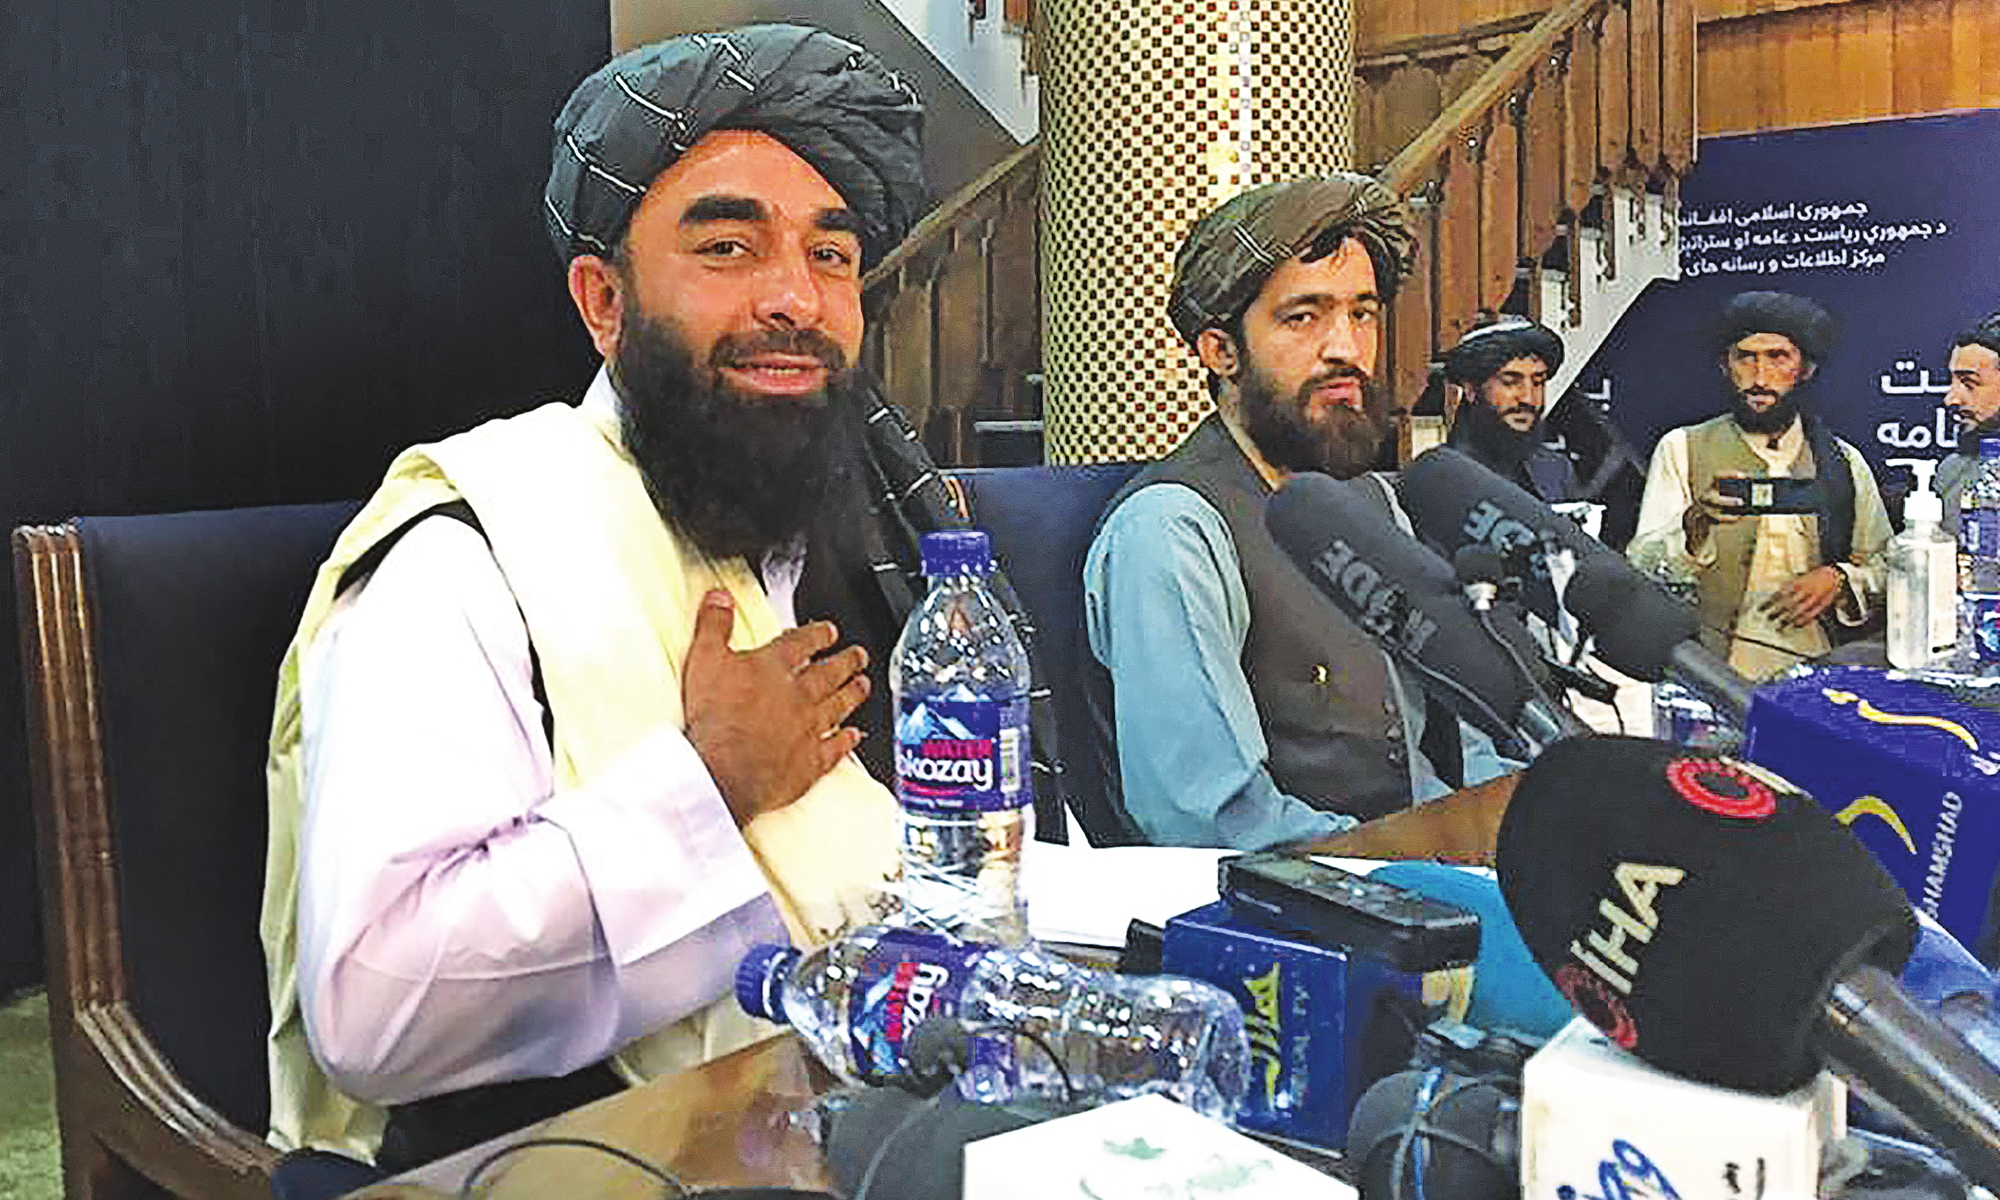 Taliban spokesperson Zabihullah Mujahid (left) gestures as he arrives to hold the first press conference in Kabul on Tuesday following the Taliban rapid takeover of Afghanistan. The Taliban declared that they wanted peaceful relations with other countries and would respect the rights of women within the framework of Islamic law.